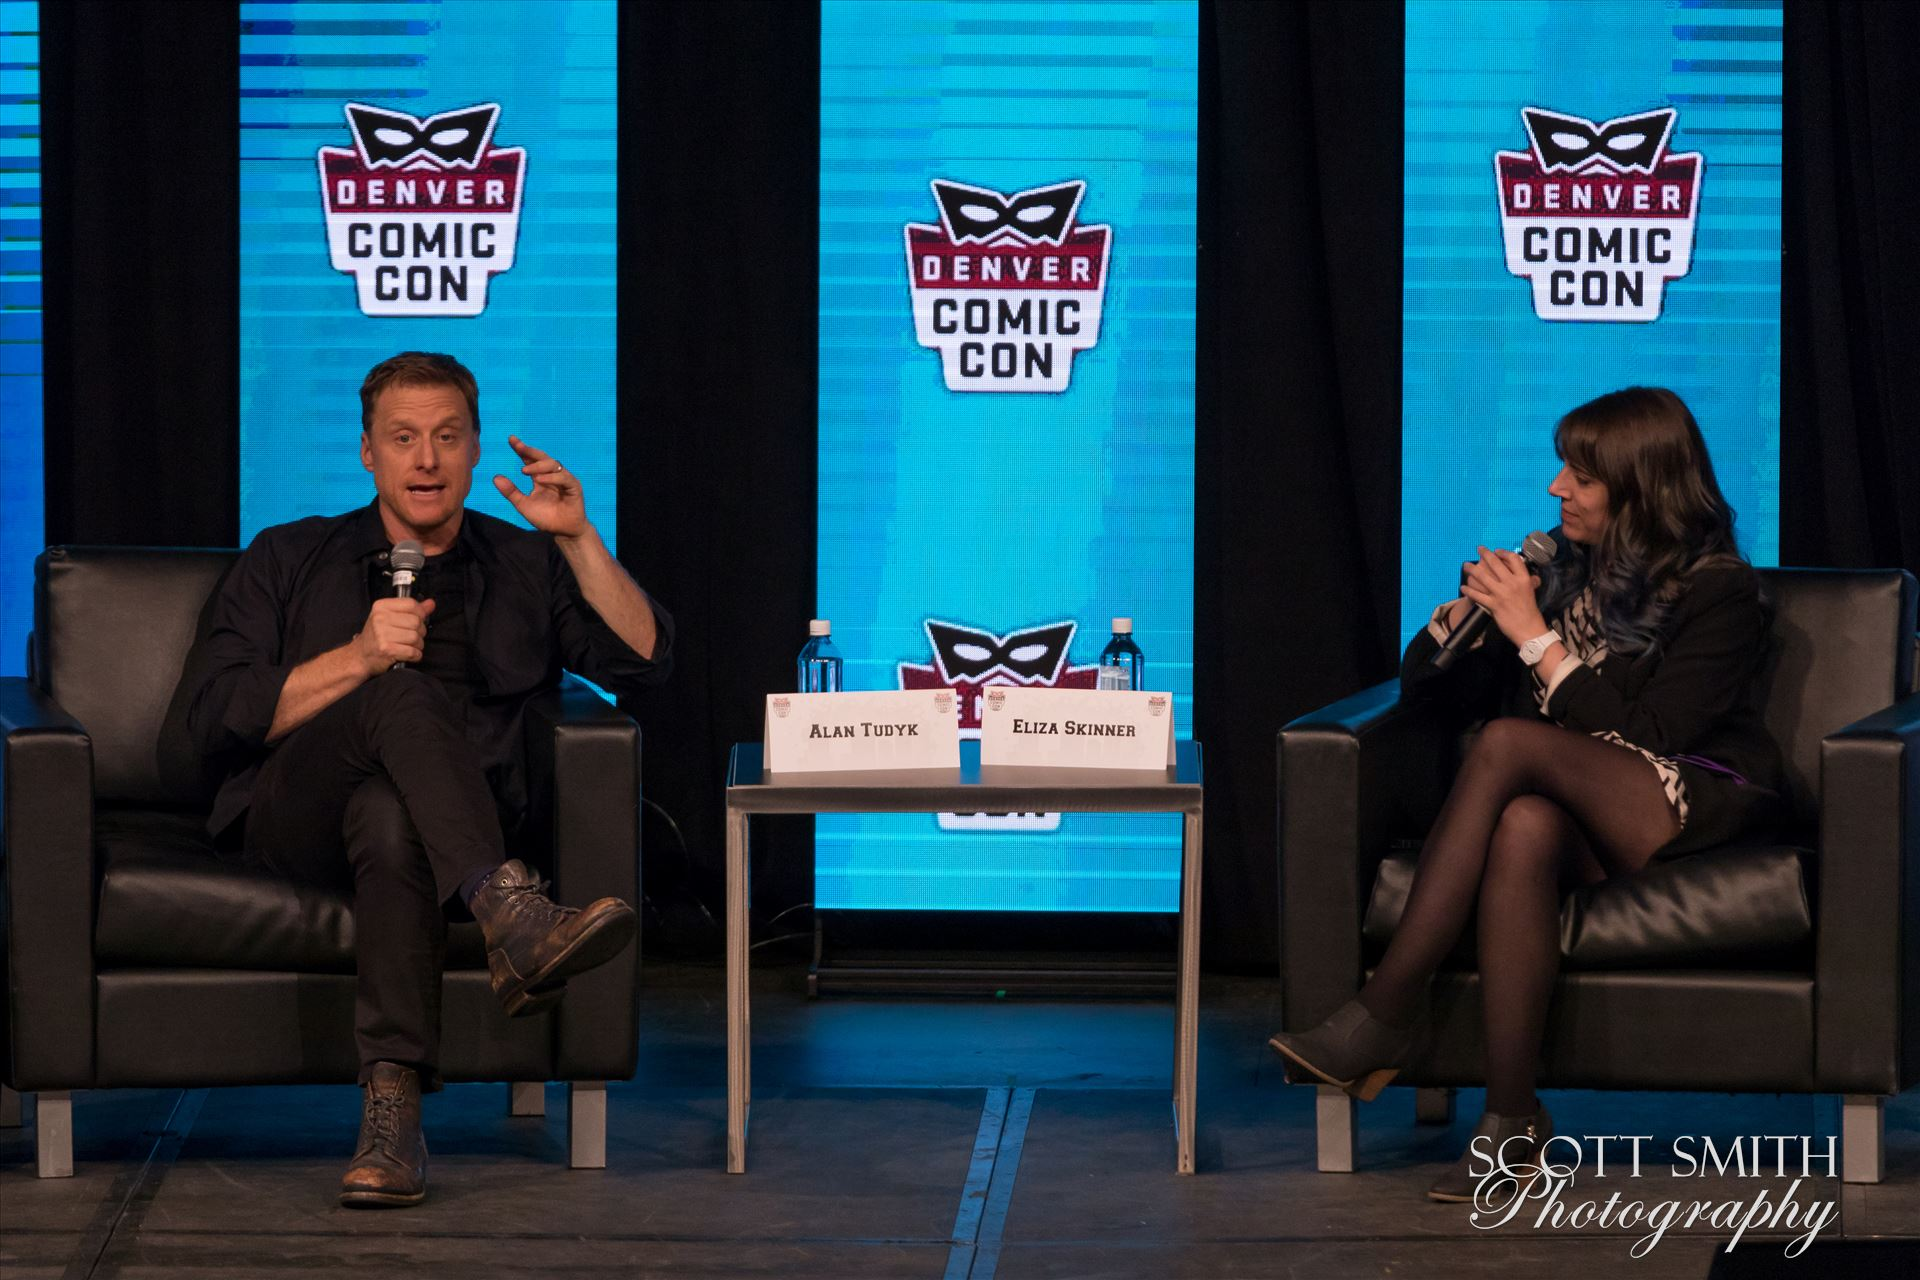 Alan Tudyk 3 at Denver Comic Con 2018 -  by D Scott Smith